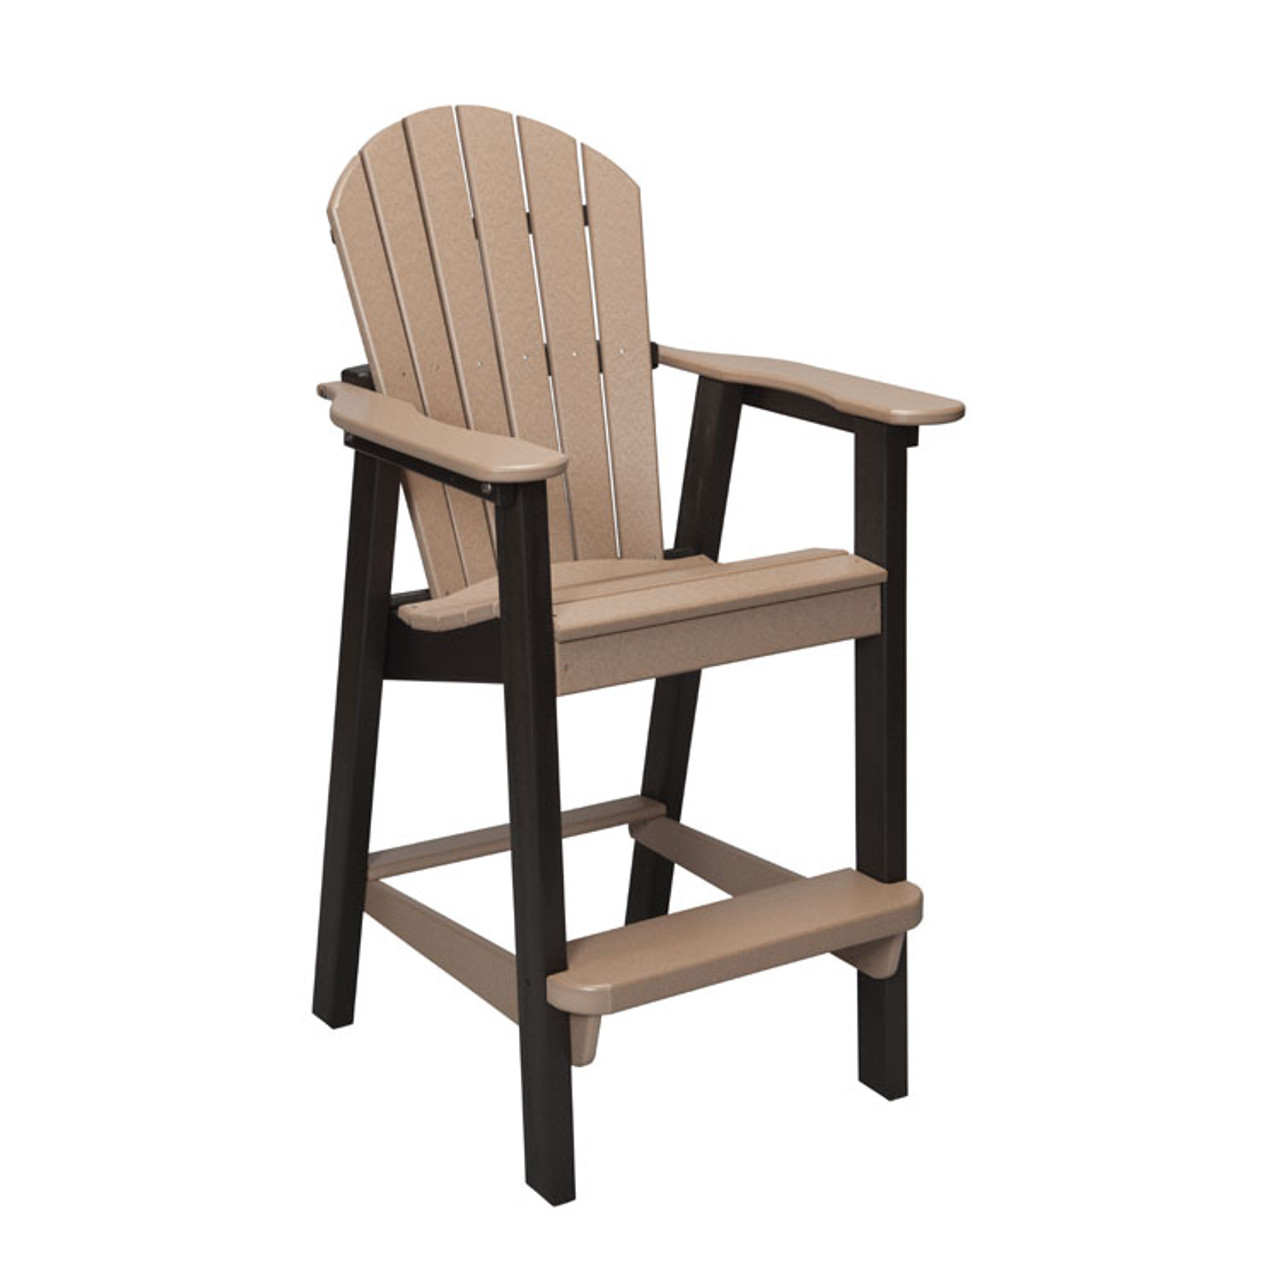 Fabulous Oceanside Outdoor Poly Lumber Counter Height Stool With Arms Frankydiablos Diy Chair Ideas Frankydiabloscom